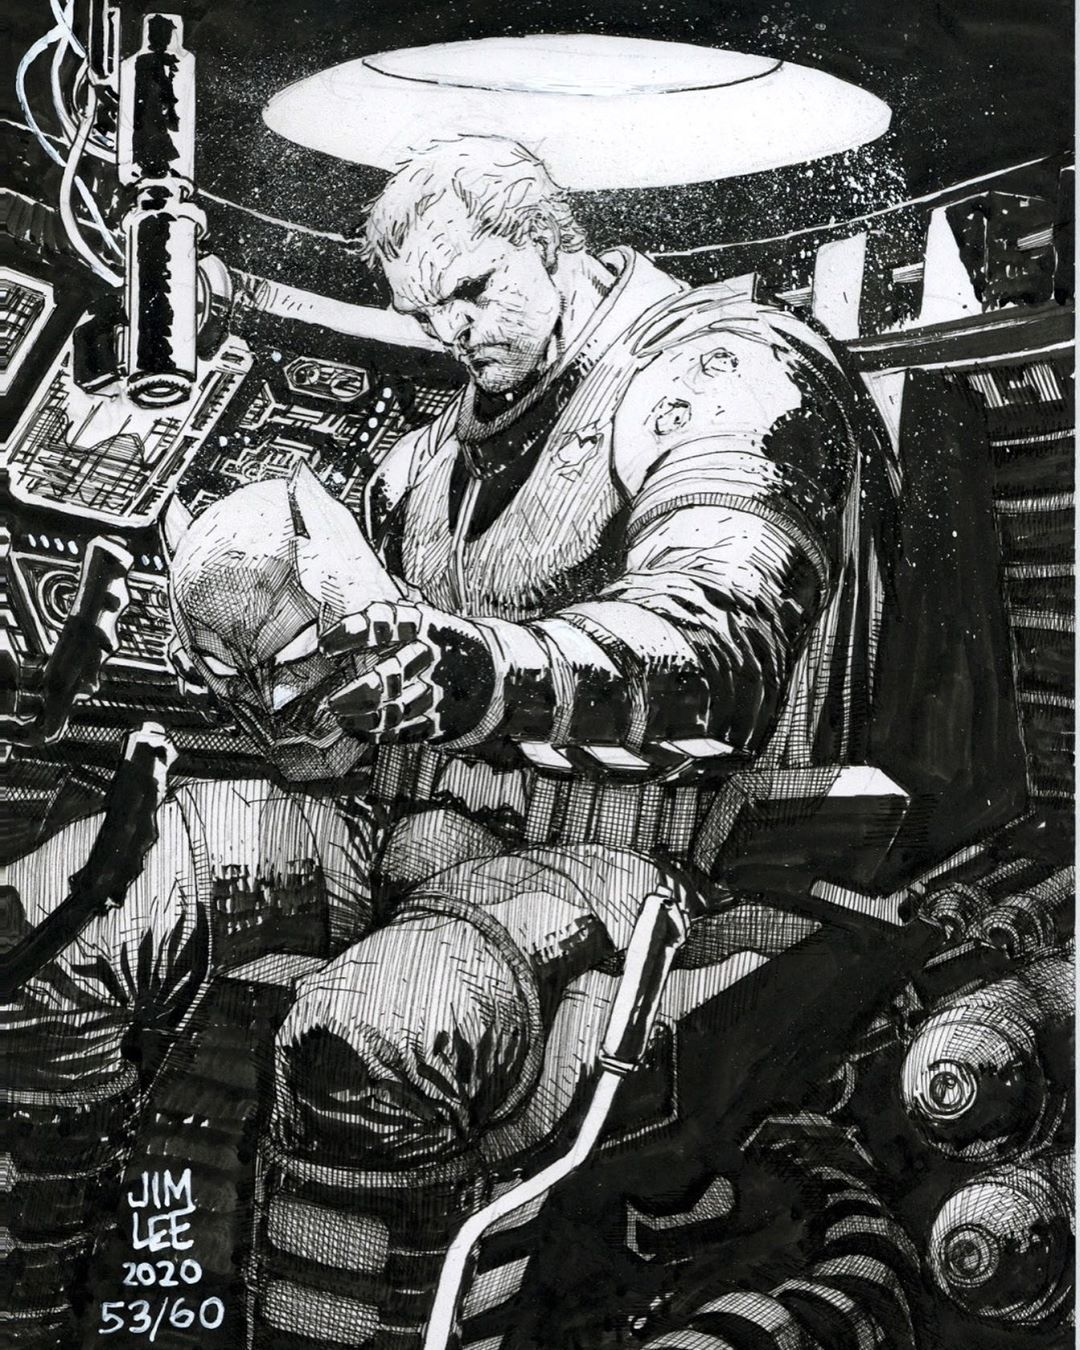 Jim Lee On Instagram The Feeling When You Get After Realizing Dcfandome Part 1 Is Over Batman The Dark Knight Returns Or In 2020 Jim Lee Art Dc Comics Art Jim Lee